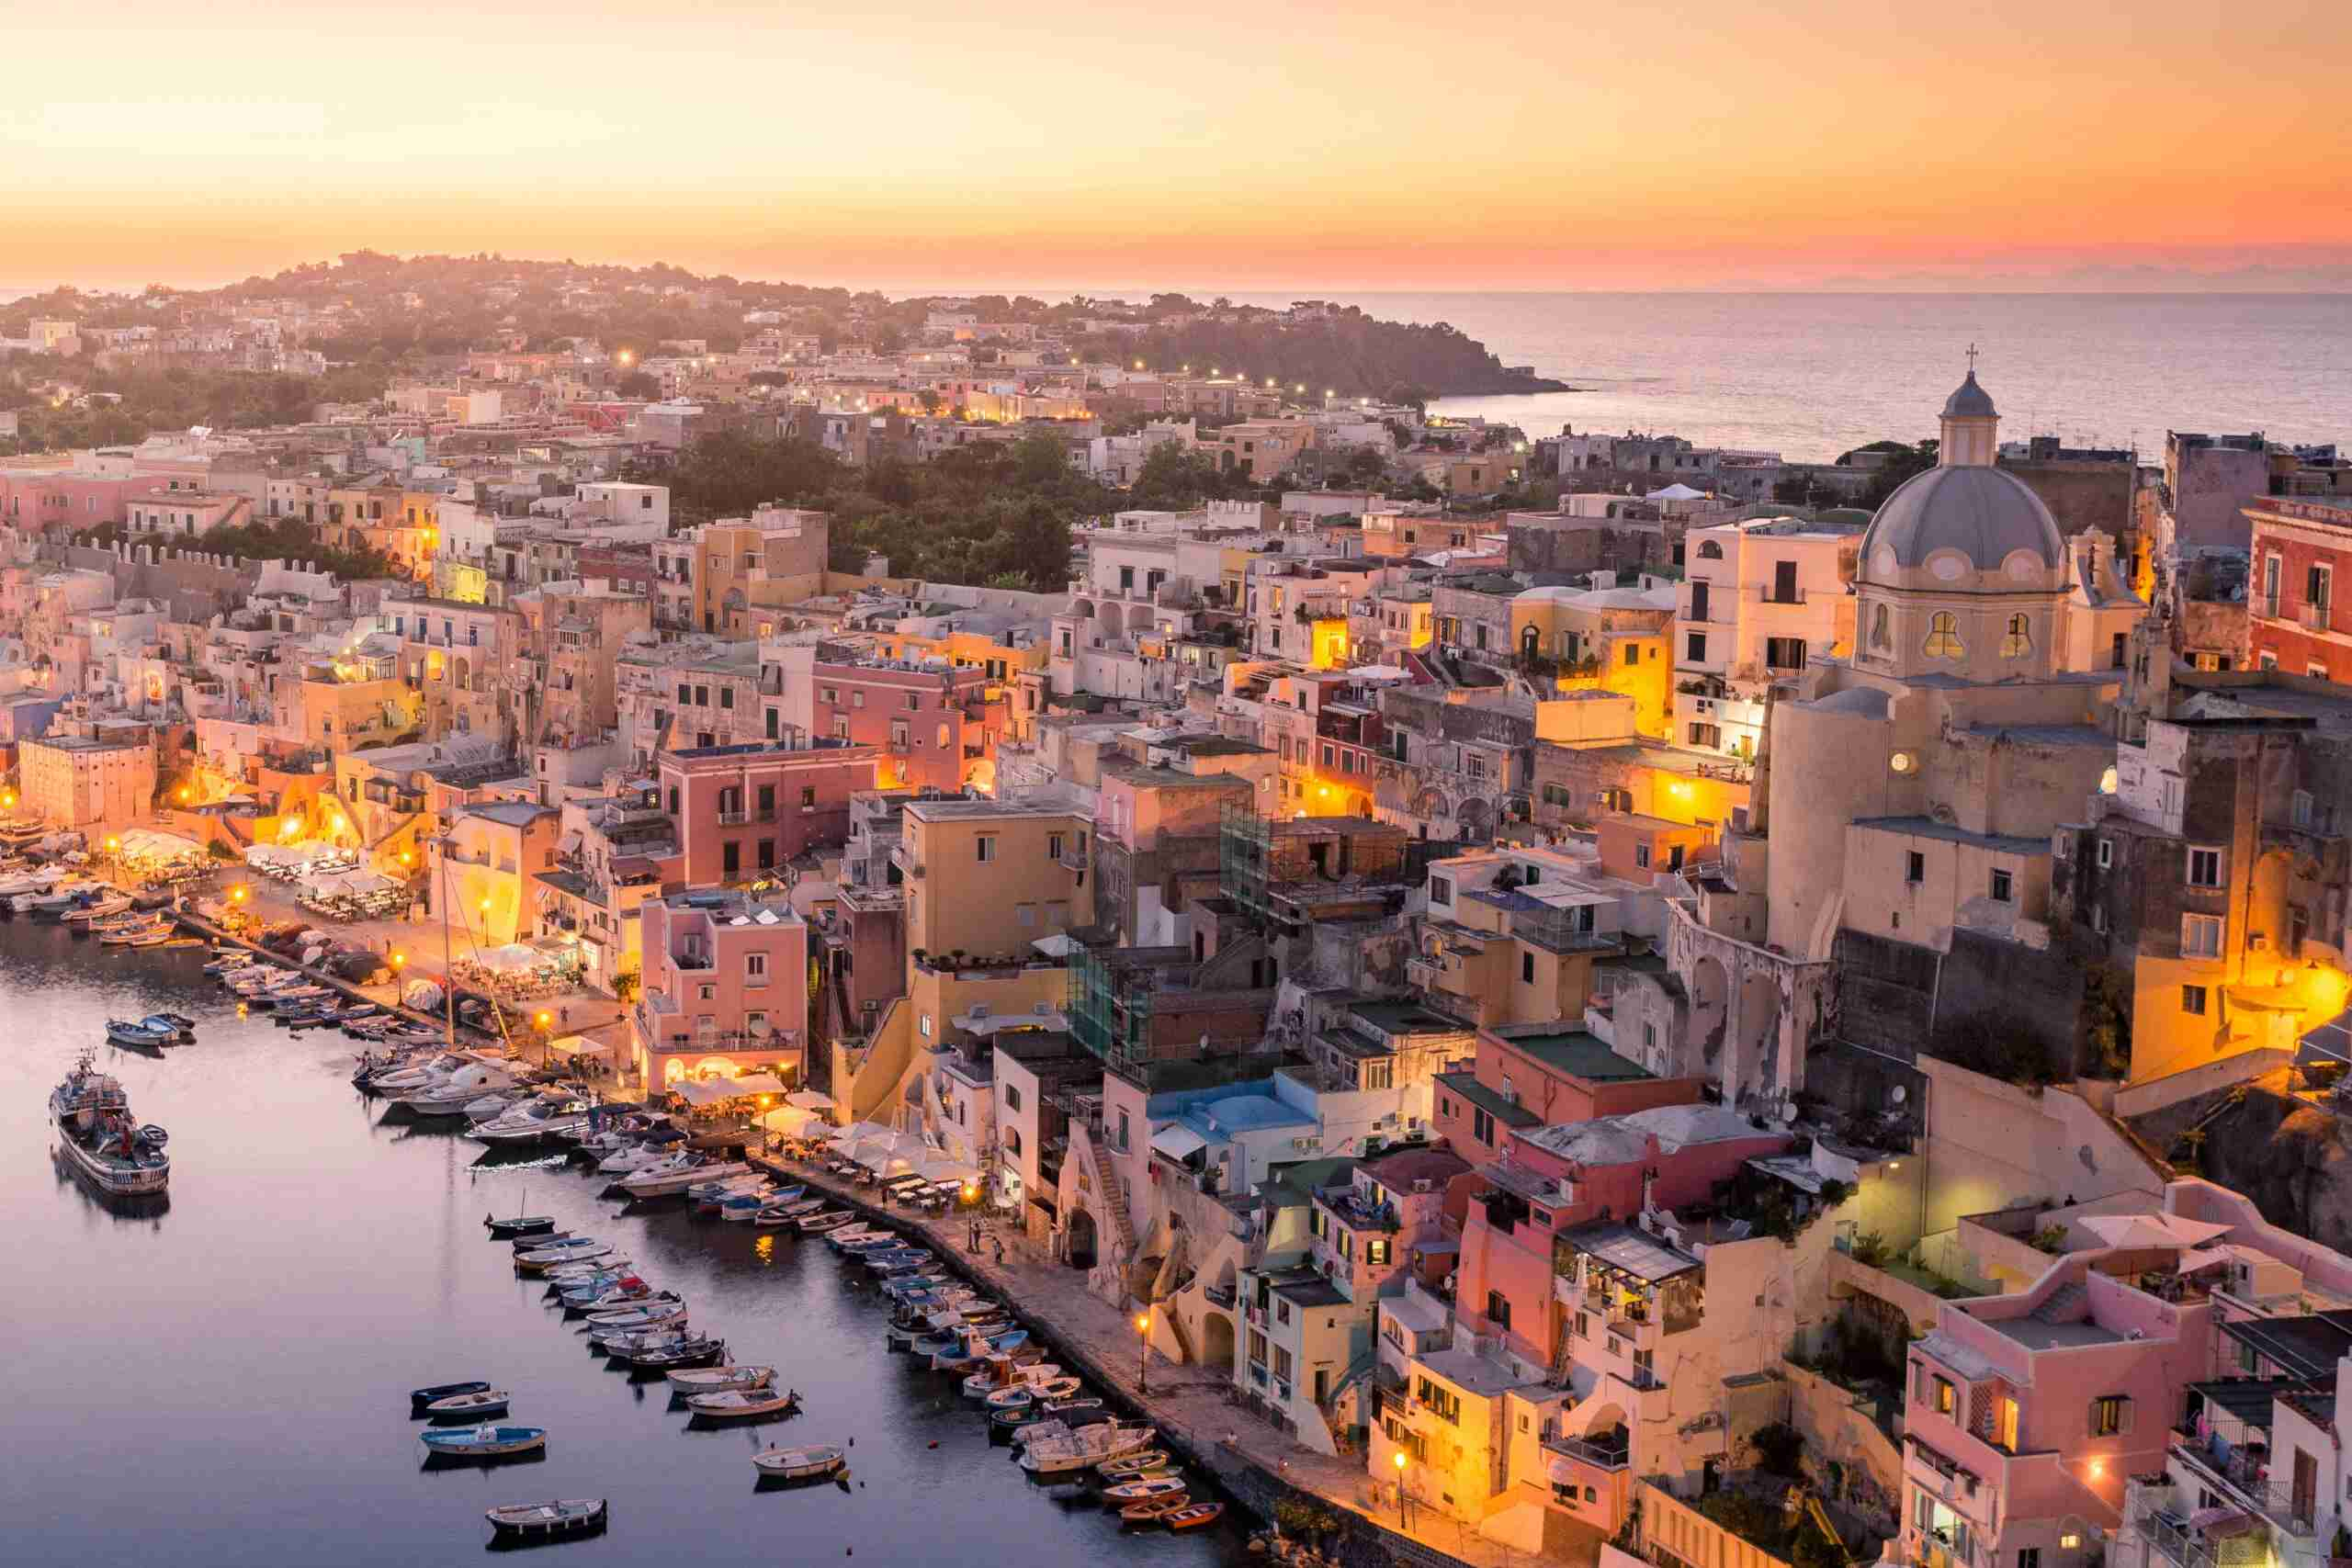 Sunset over La Corricella Harbour. (Photo by